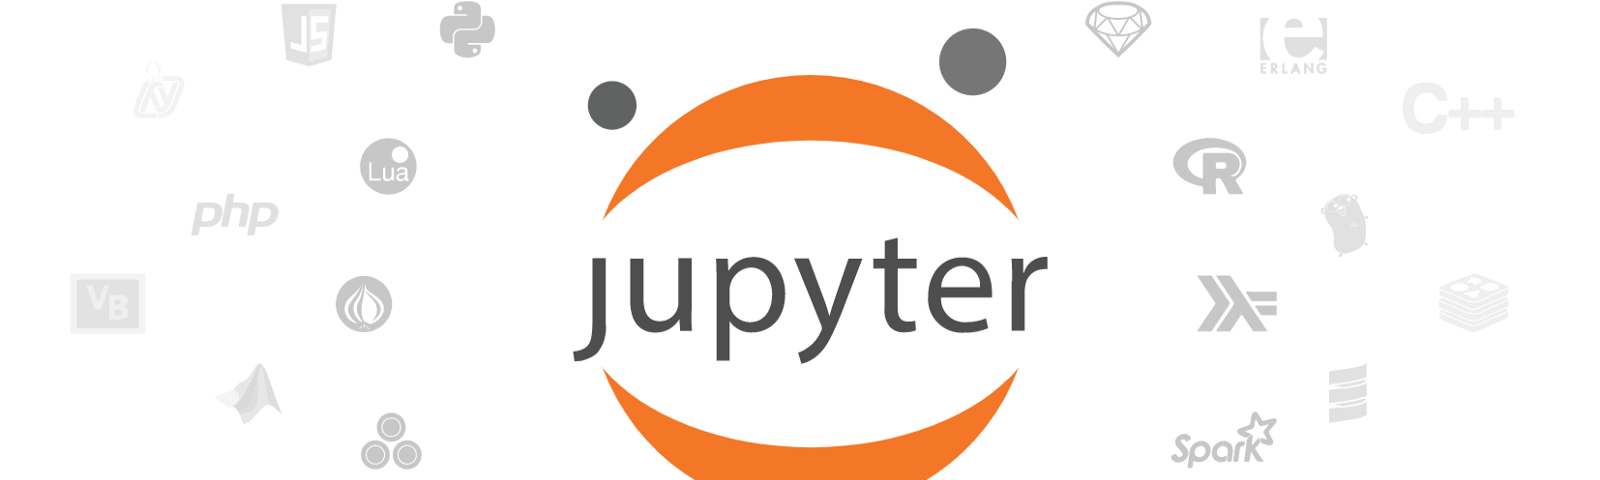 Jupyter – Deep Learning as I See It